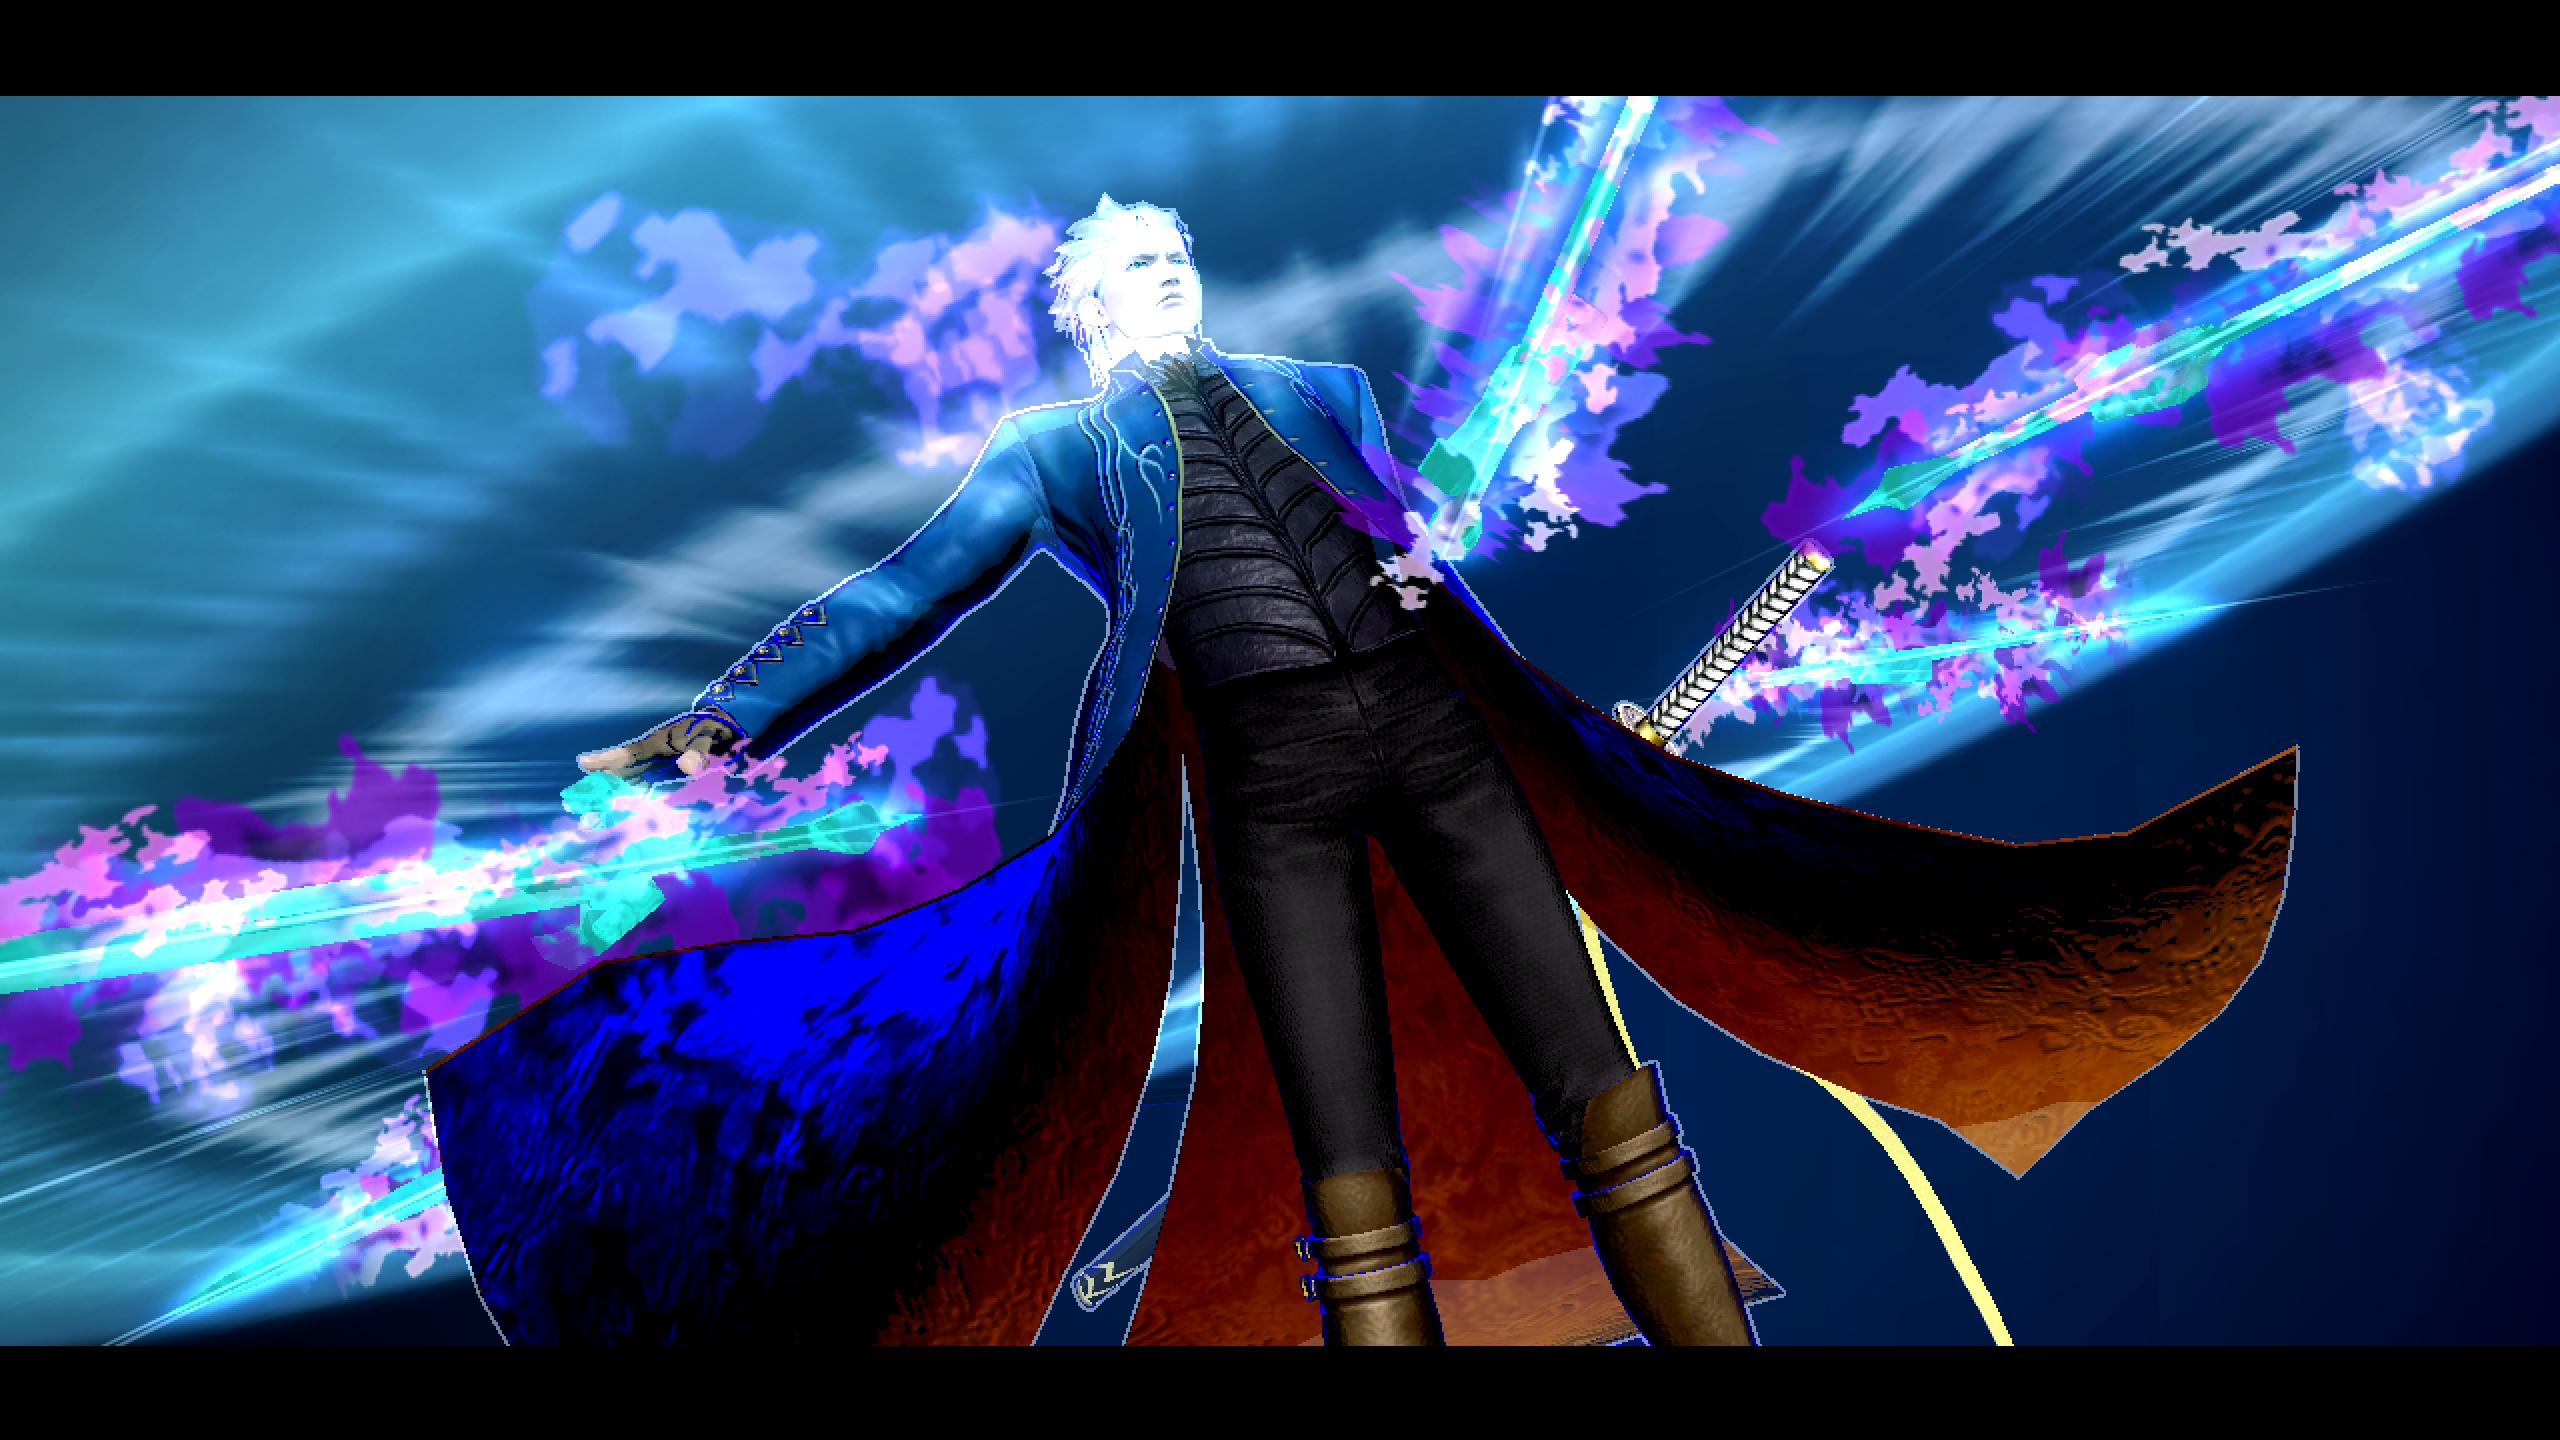 Vergil dans Ultimate Marvel vs. Capcom 3 6151131072_7162c4f7d0_o